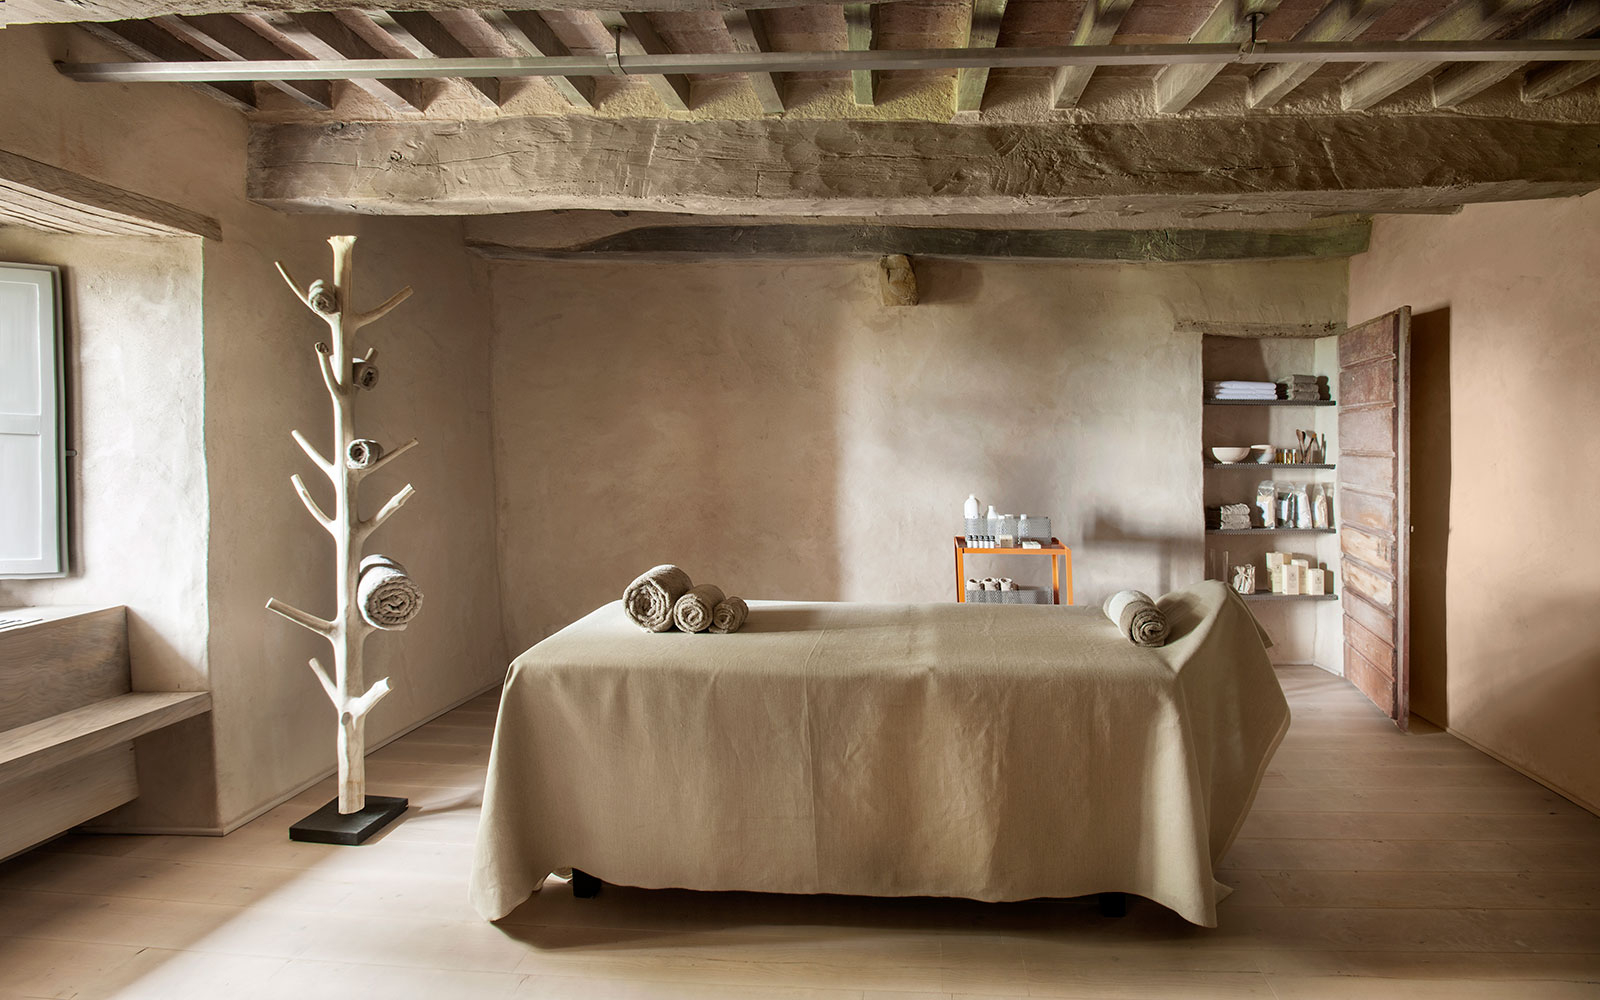 Tuscany's Enticing New Spa is a Minimalist Paradise With Soaking Tubs